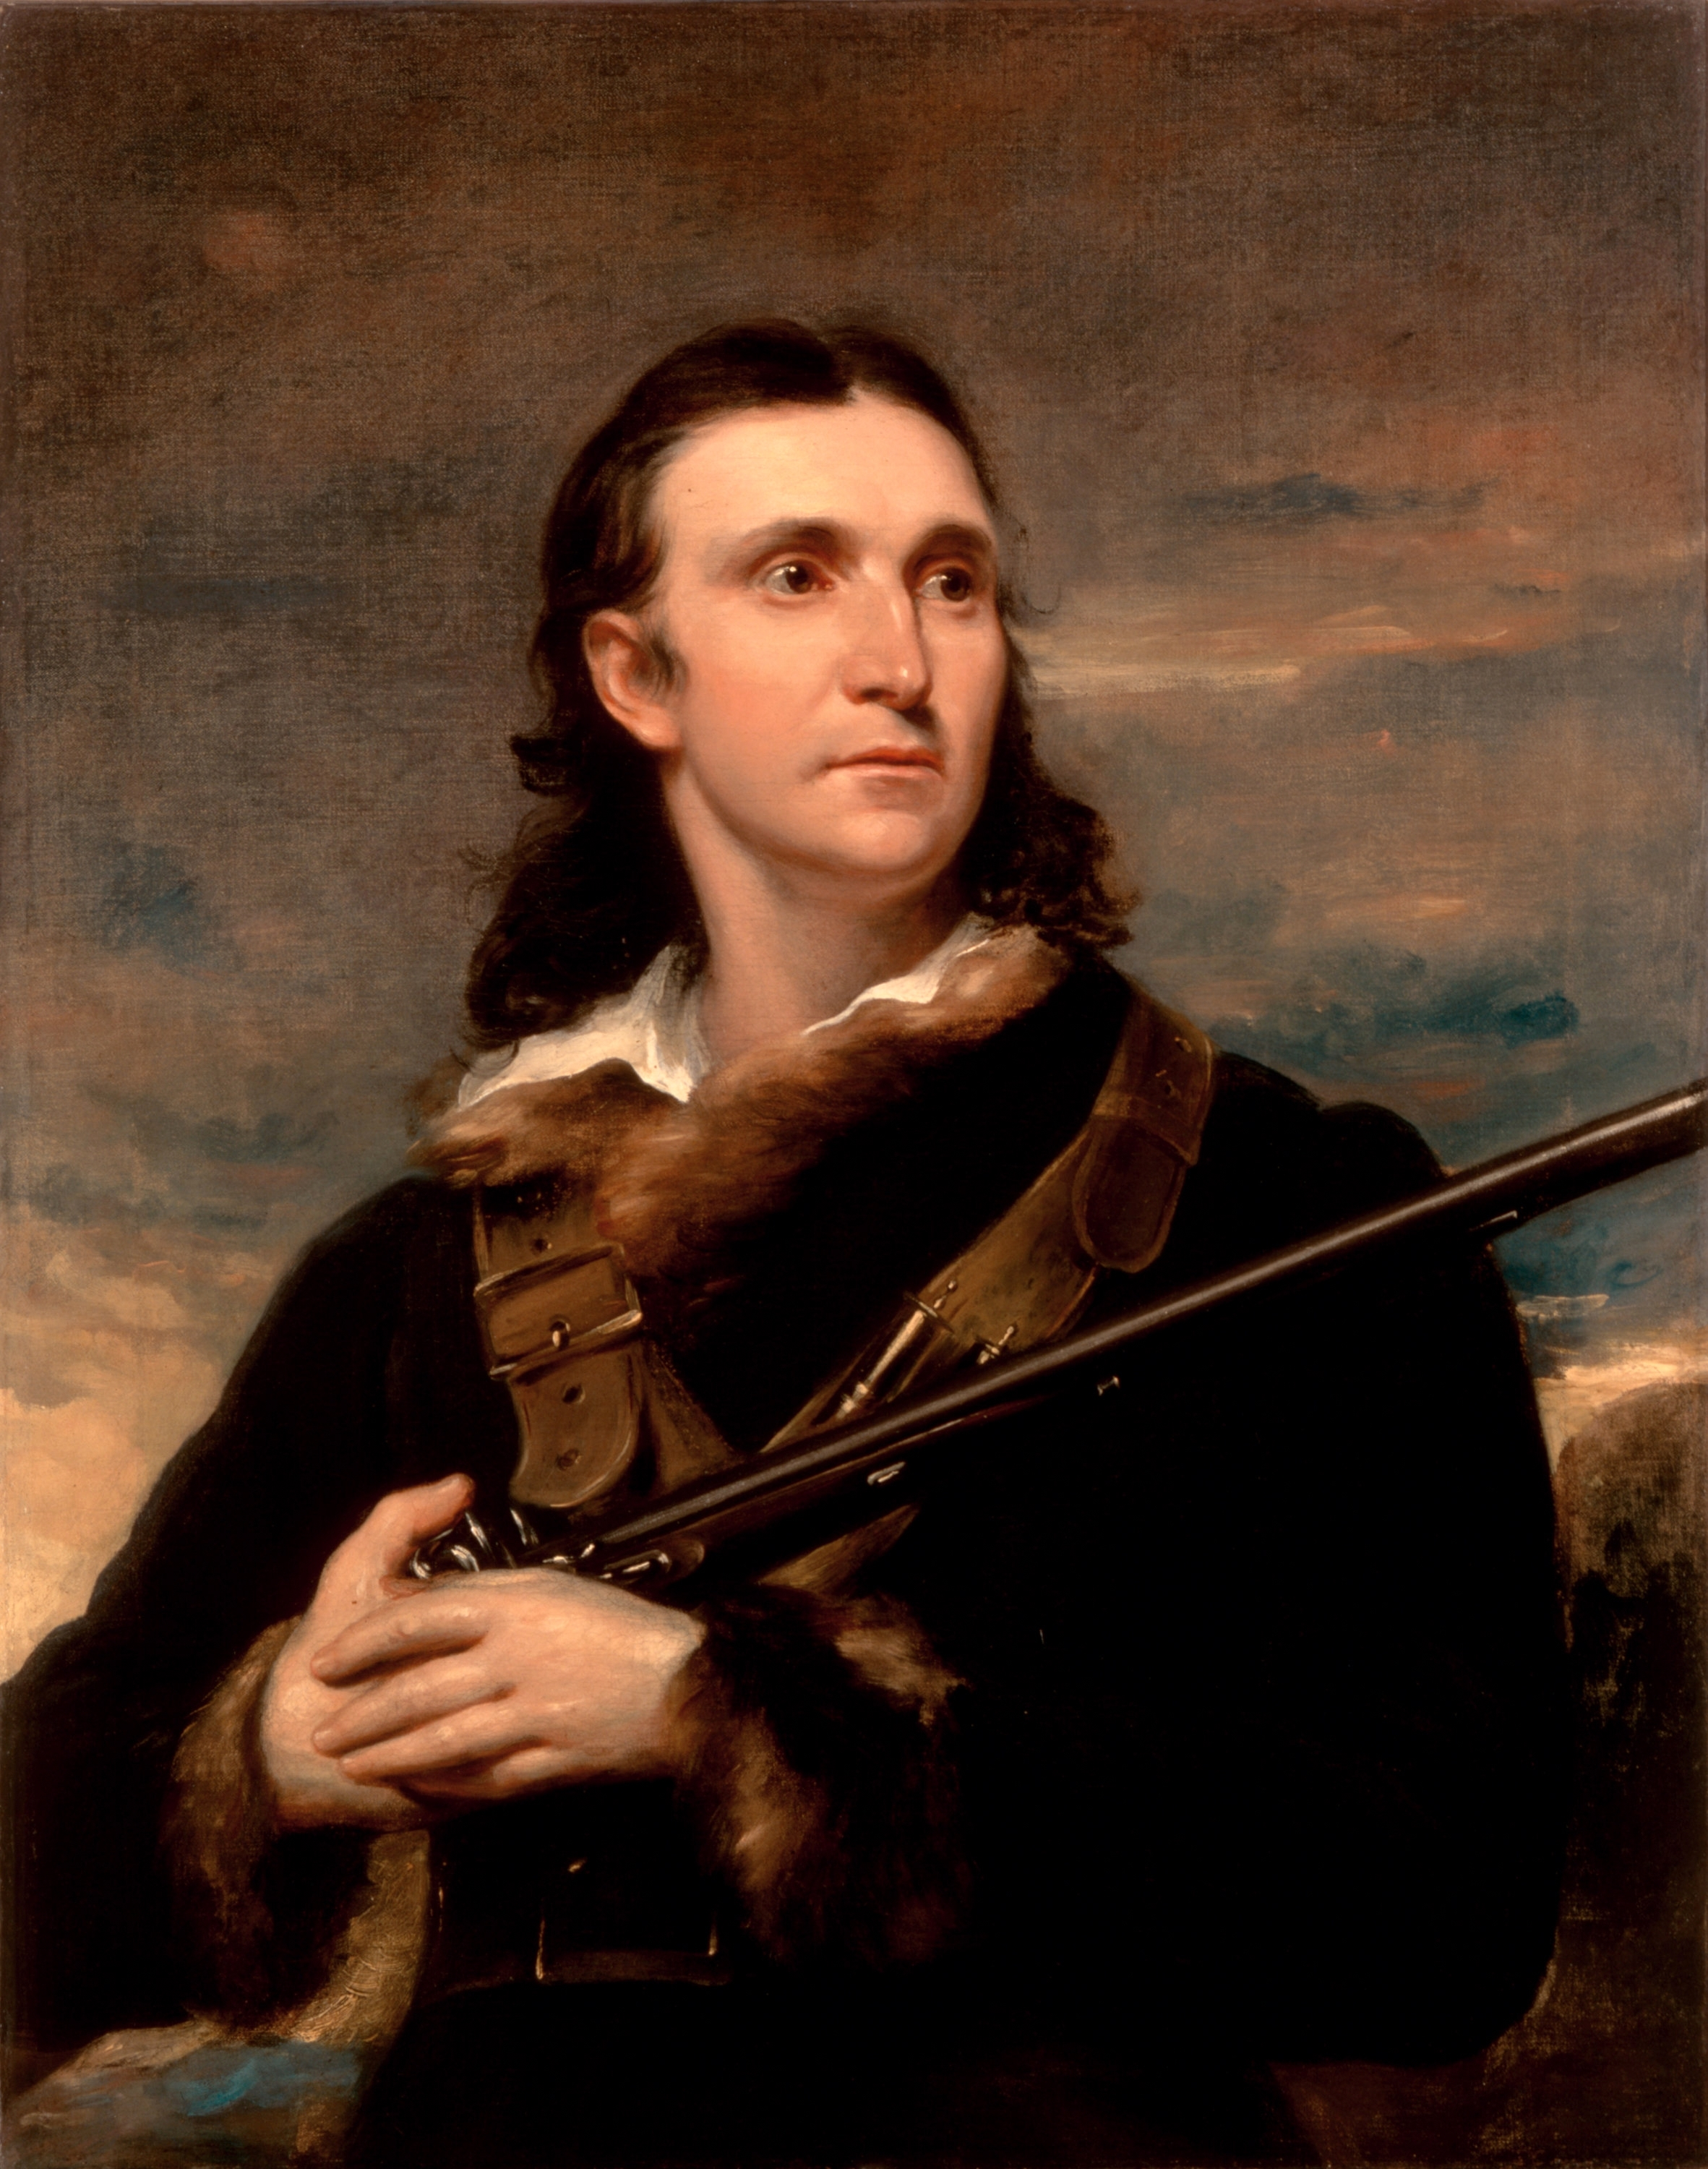 John James Audubon Wikipedia